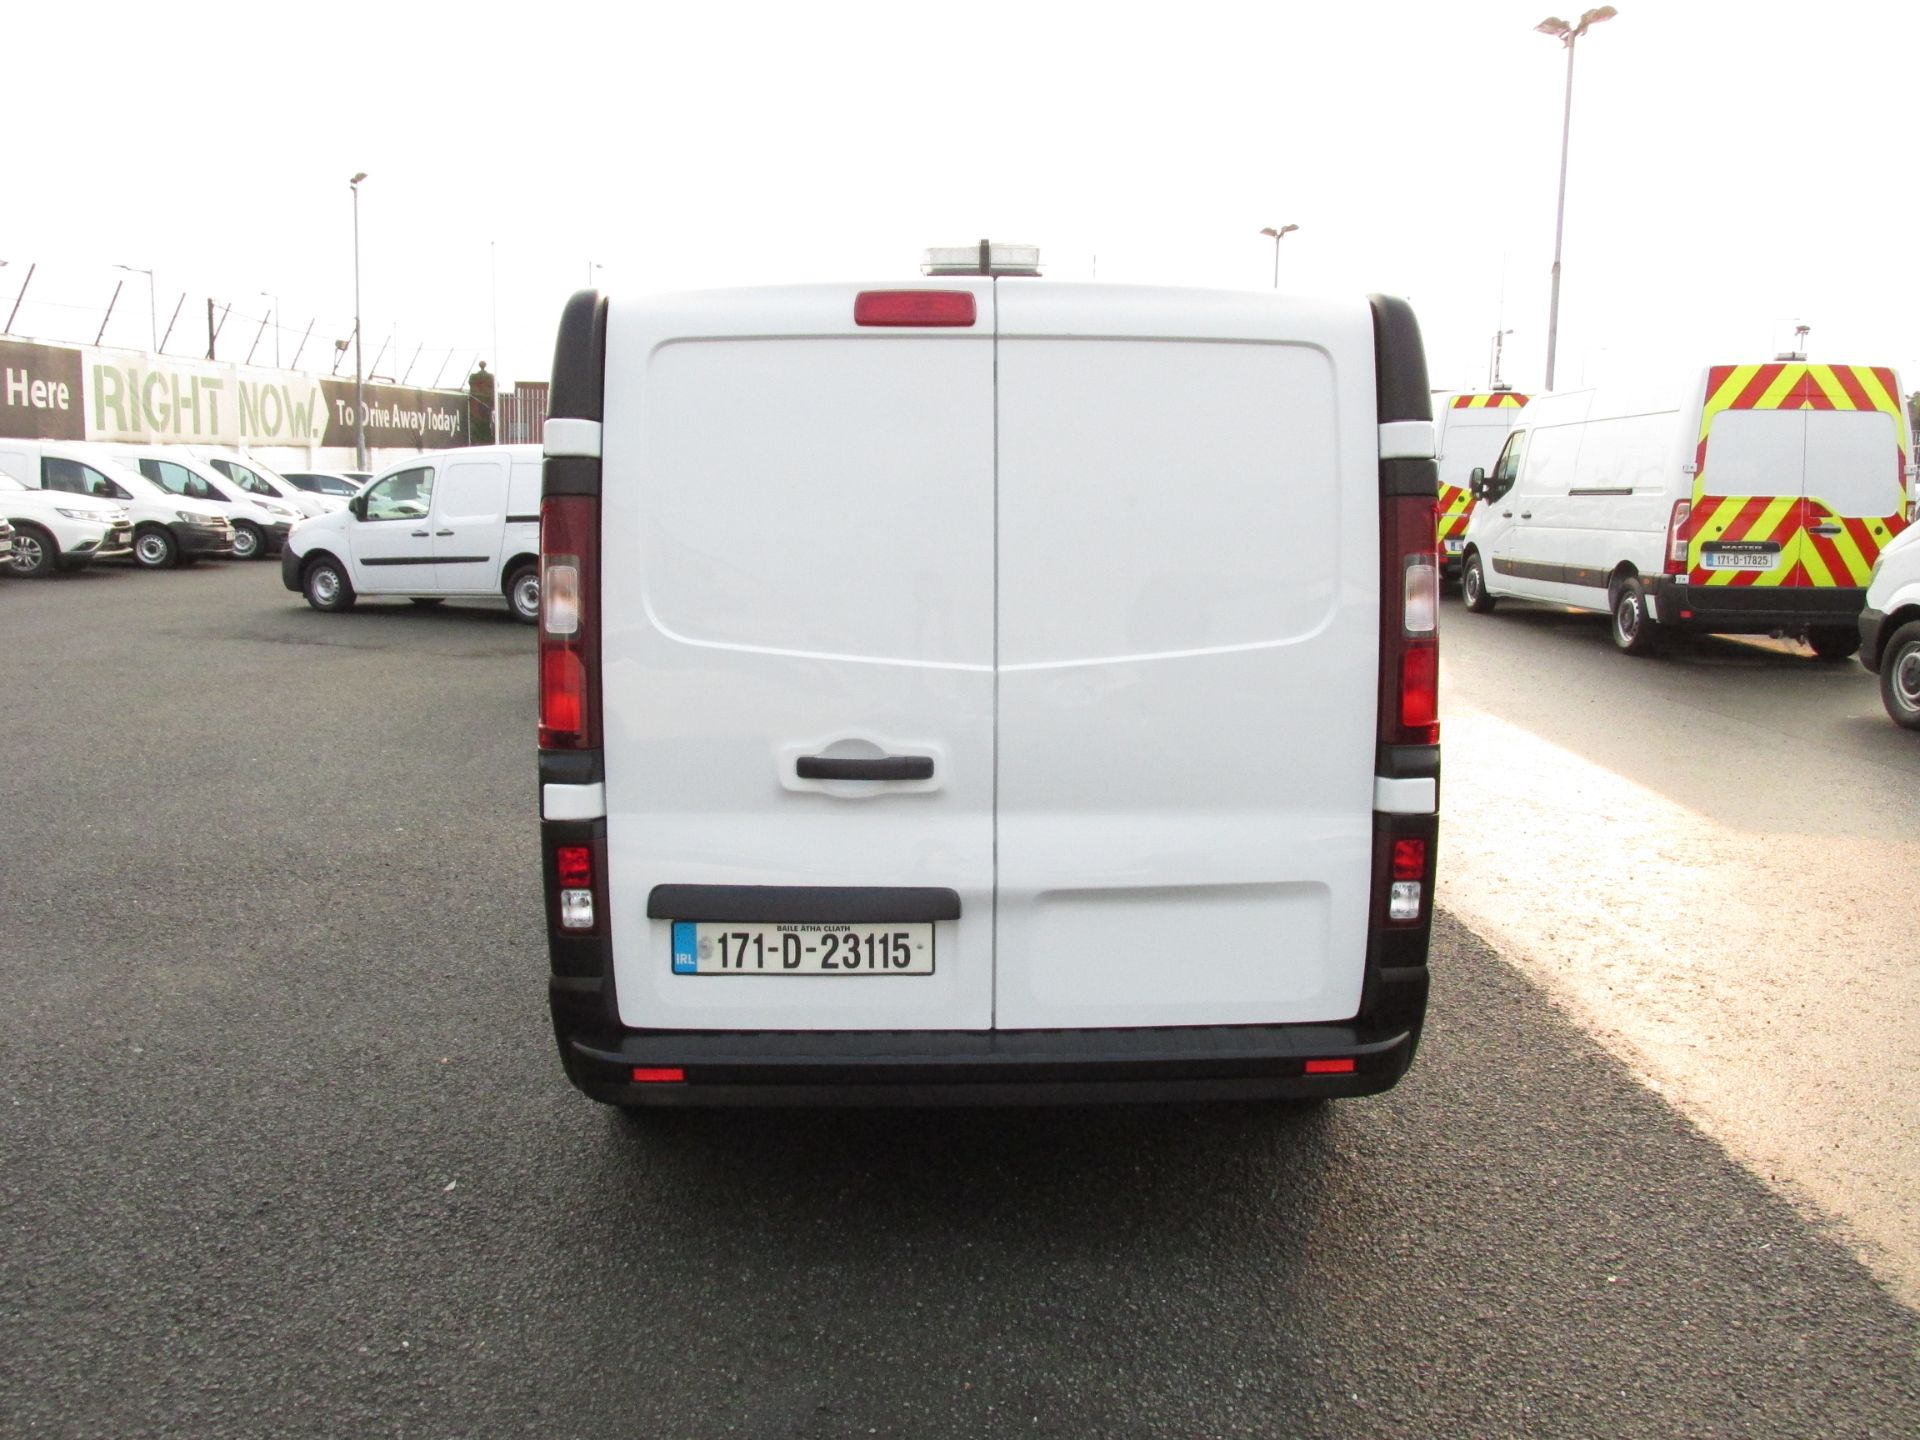 2017 Renault Trafic LL29 DCI 120 Business 3DR (171D23115) Image 6